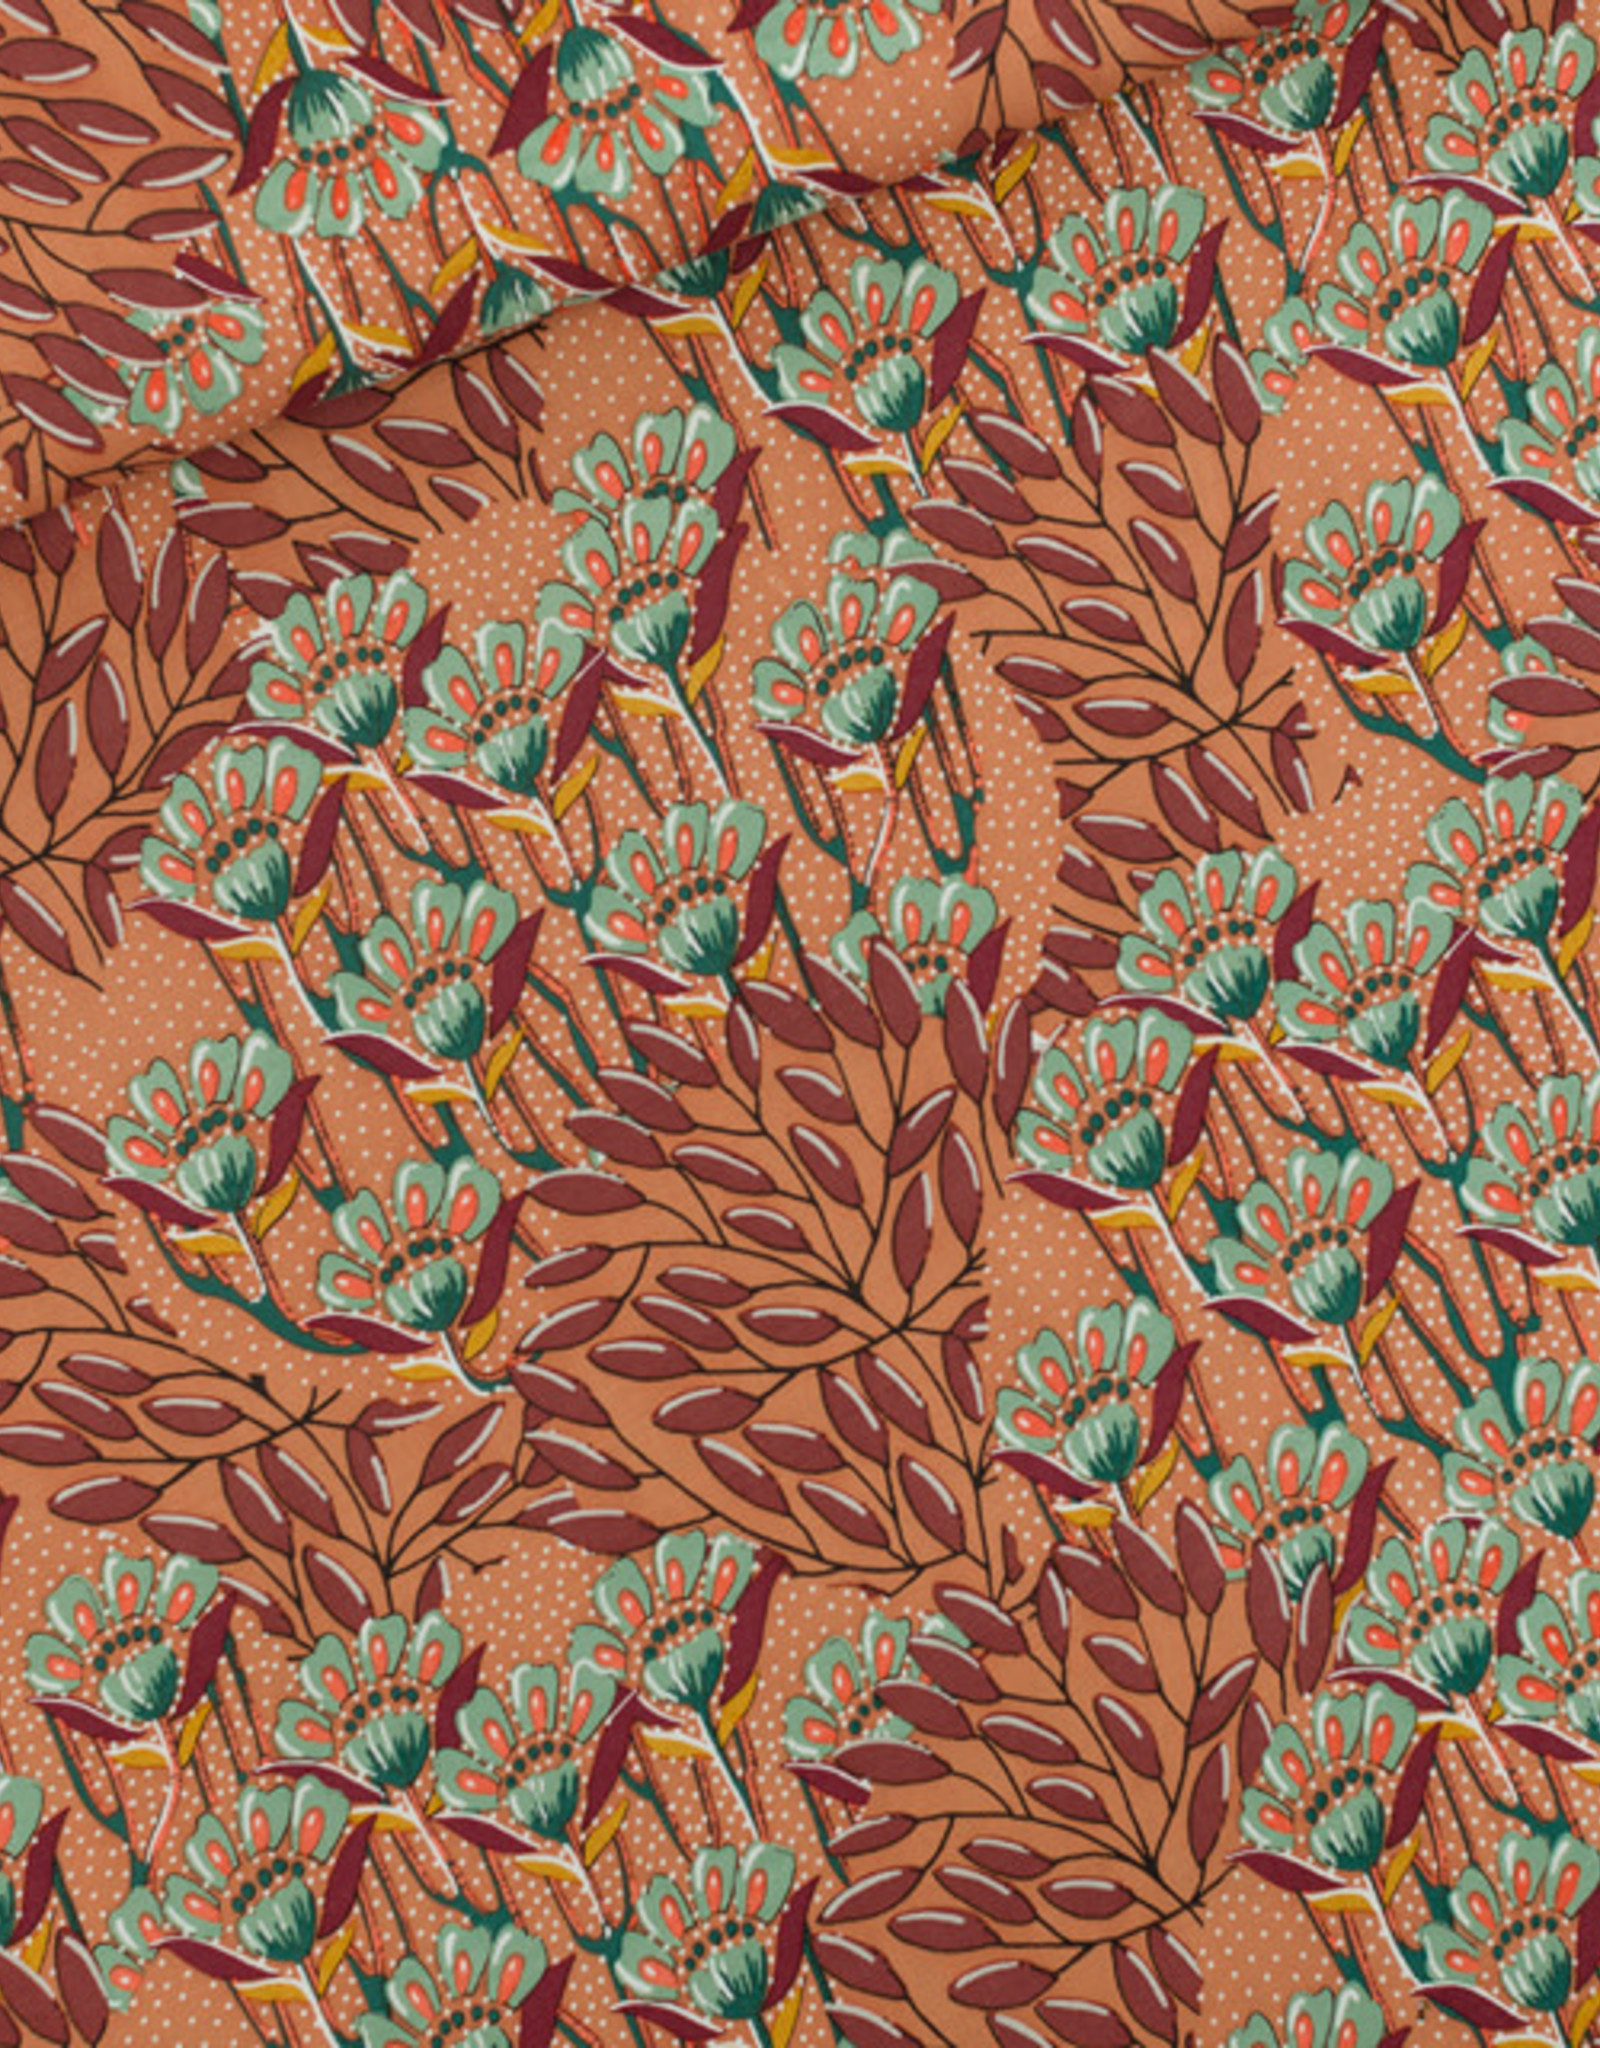 See You At Six Gilly flowers viscose rayon